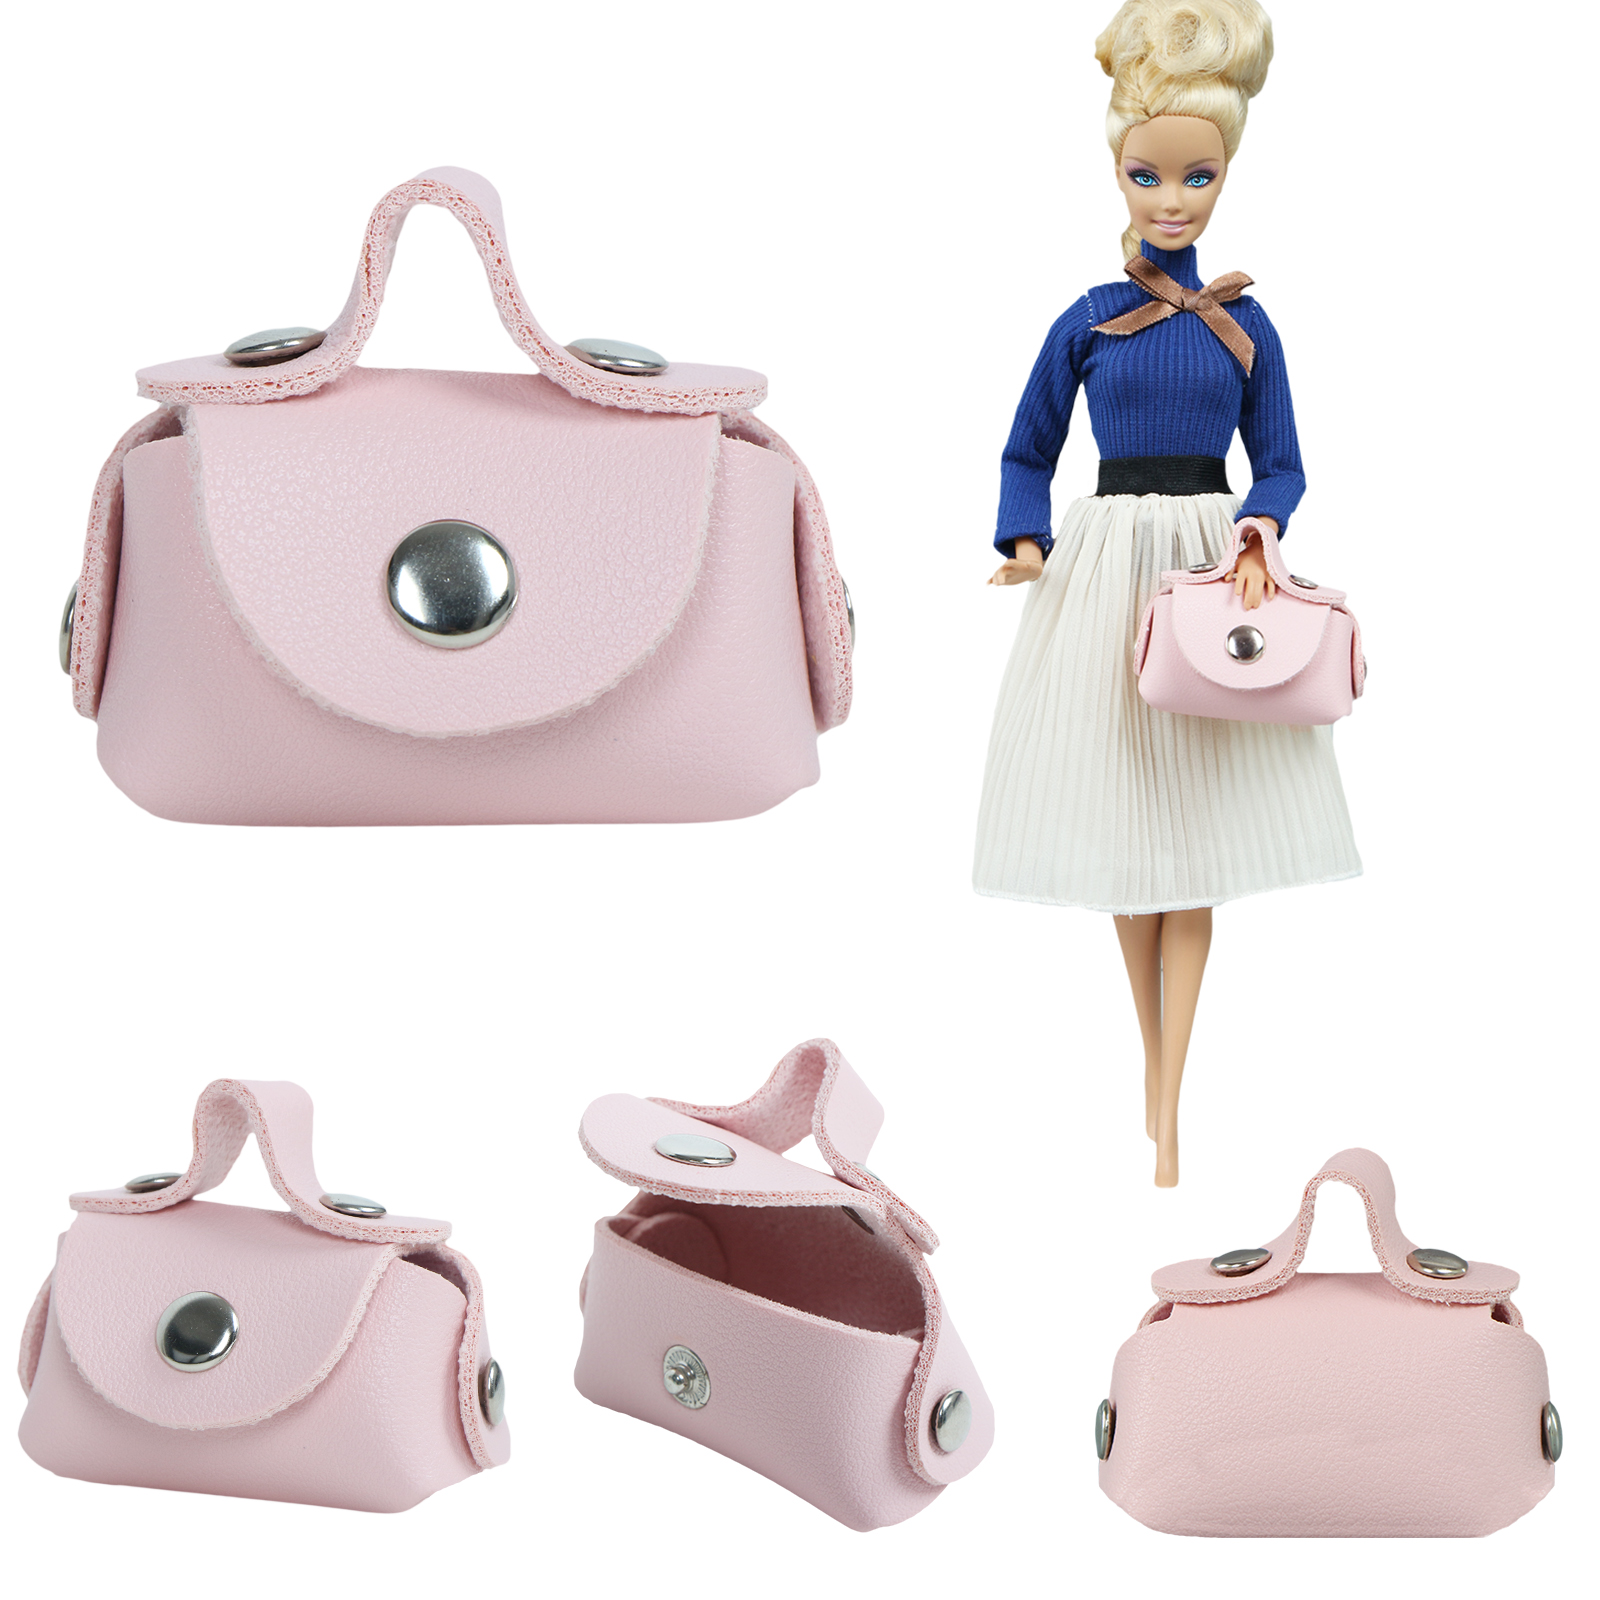 One Pcs Doll Bag Fashion Pink Shoulder Shopping Handbag Best Make Up Bag Accessories Clothes For Barbie Doll 1/6 DIY Baby Toy